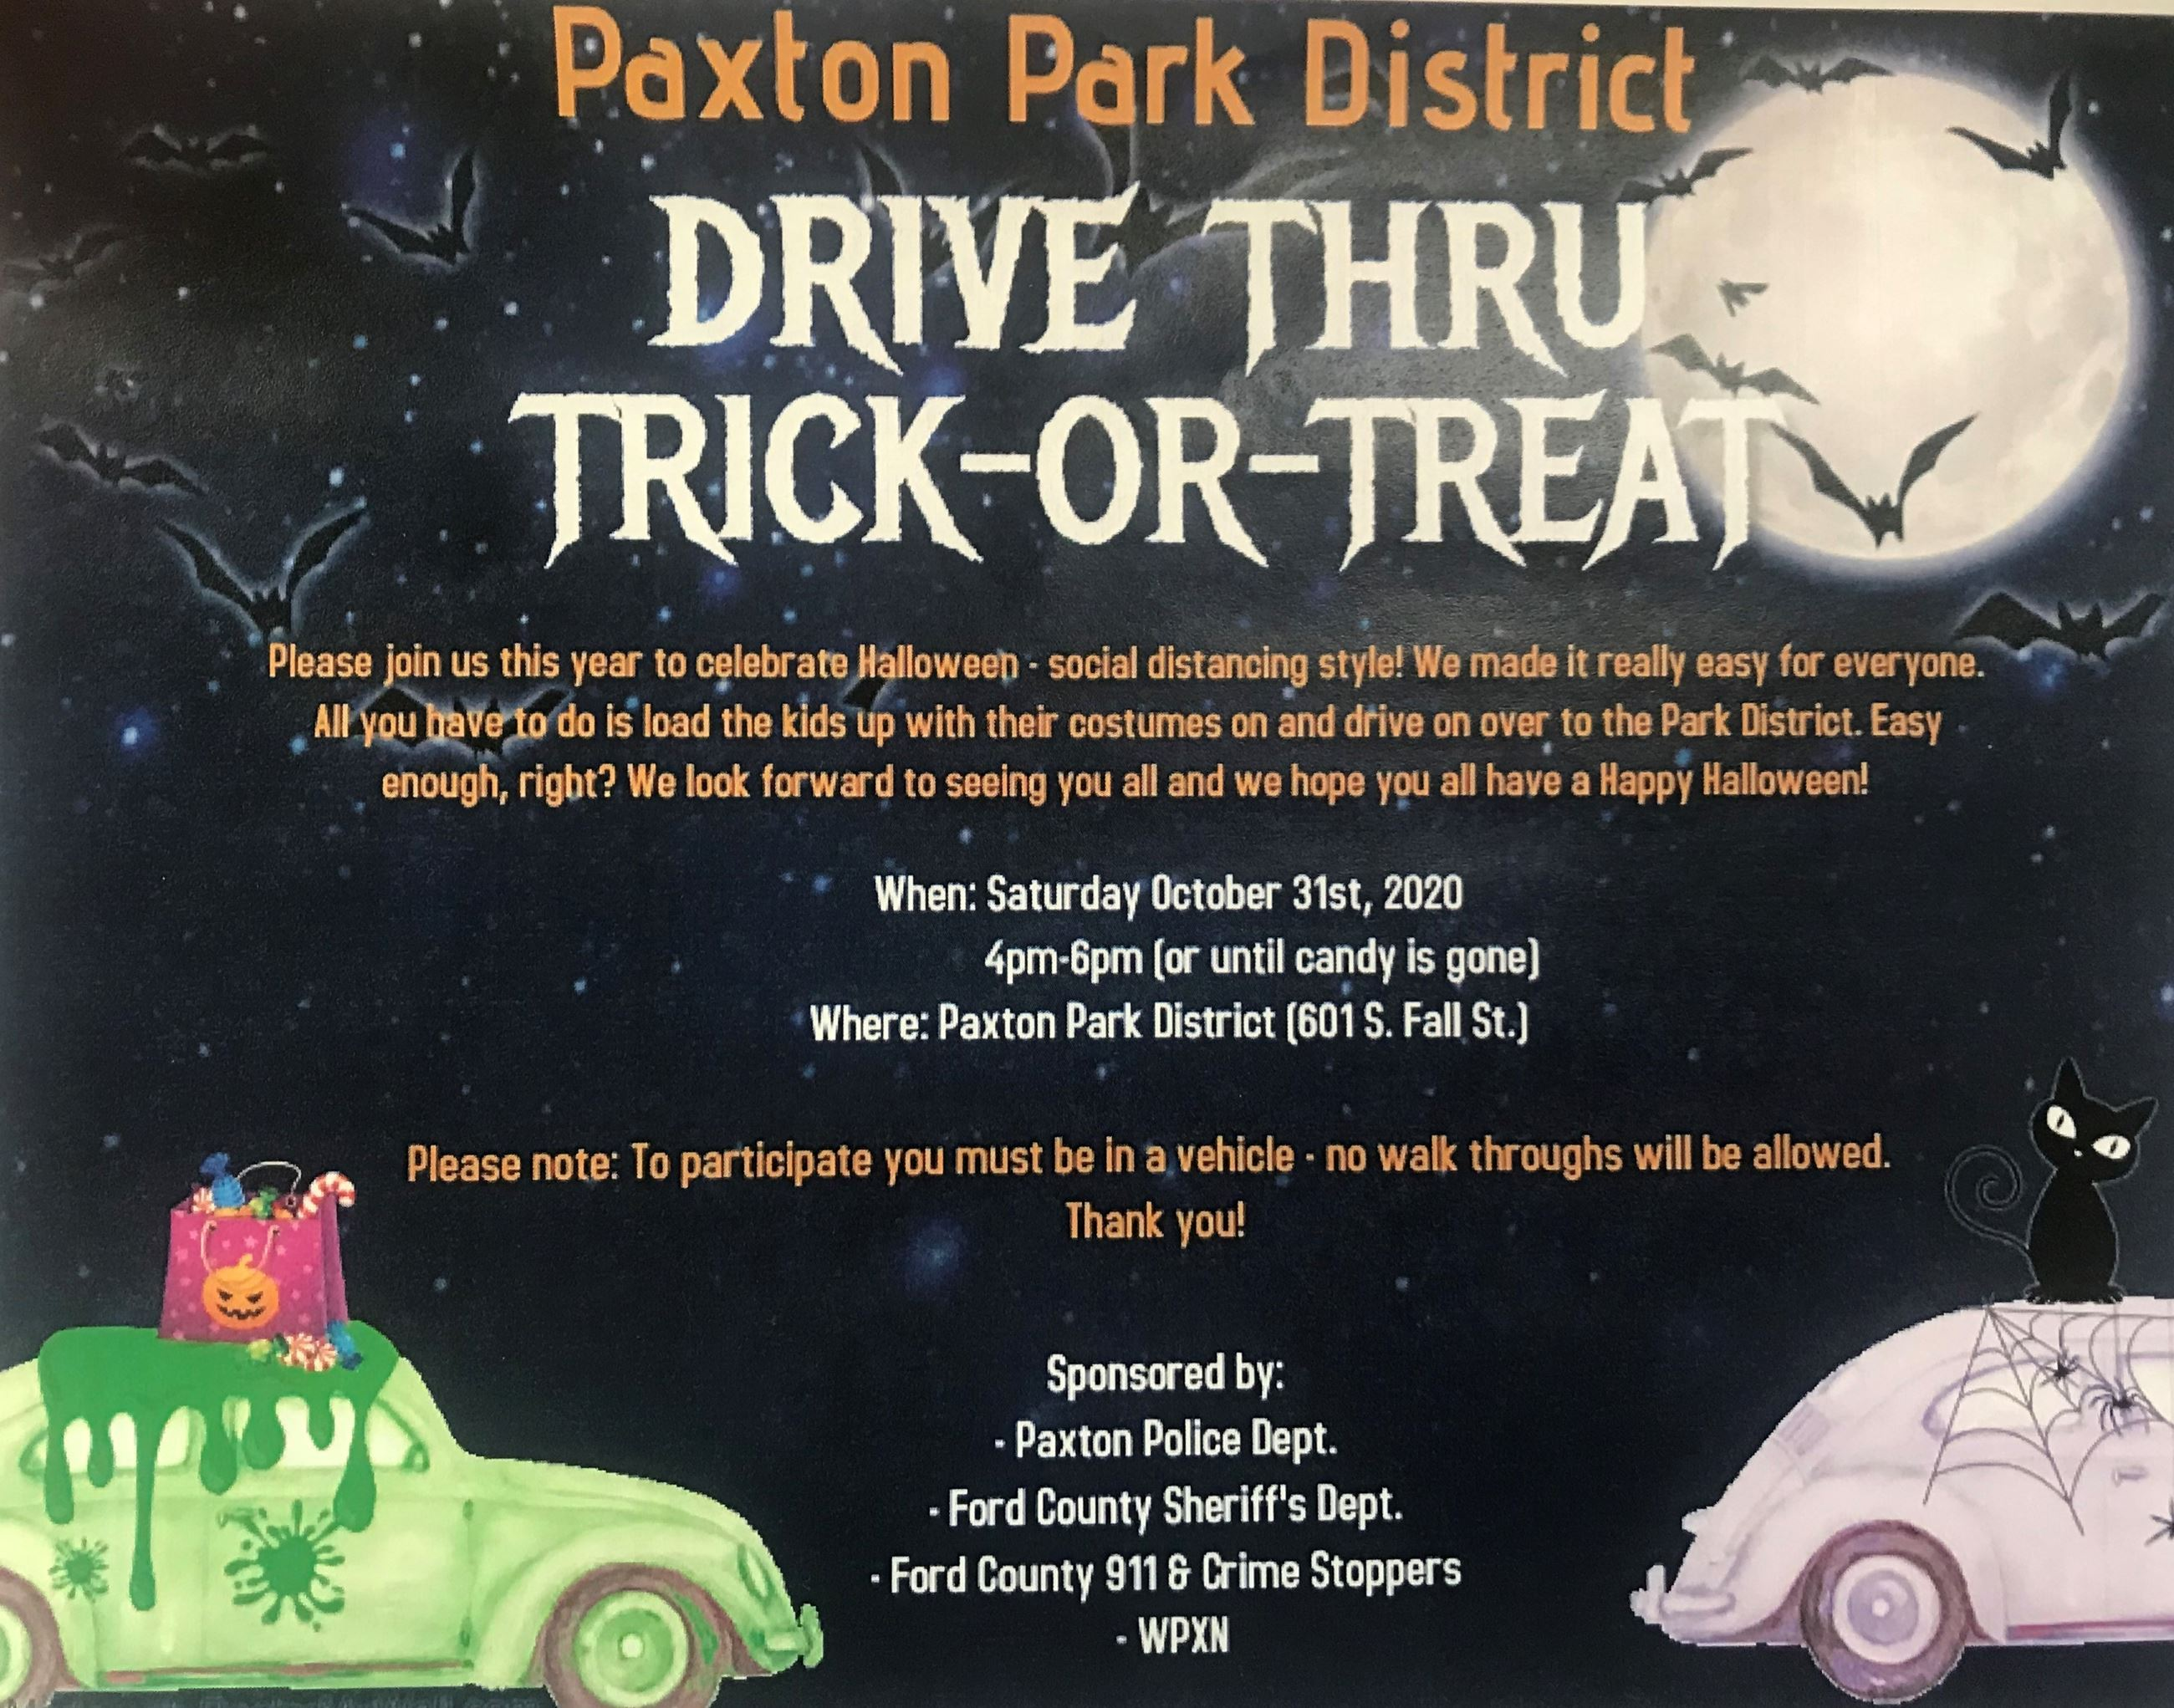 Park District Drive Thru Trick-or-Treat